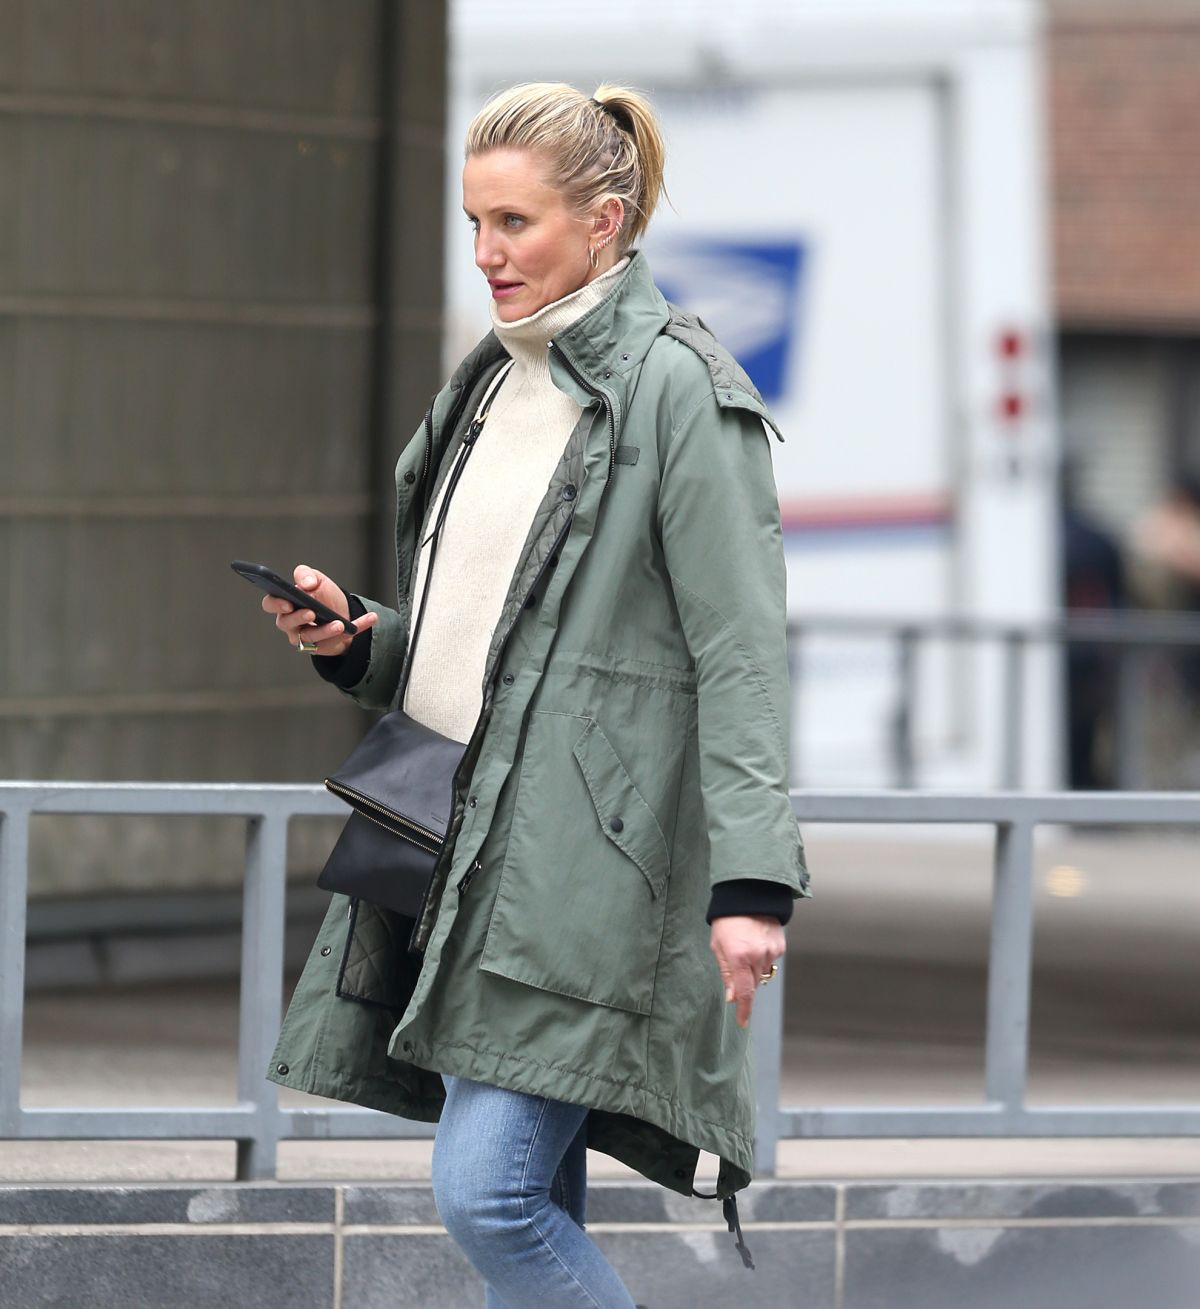 CAMERON DIAZ Out Shopping in New York 02/15/2019 – HawtCelebs